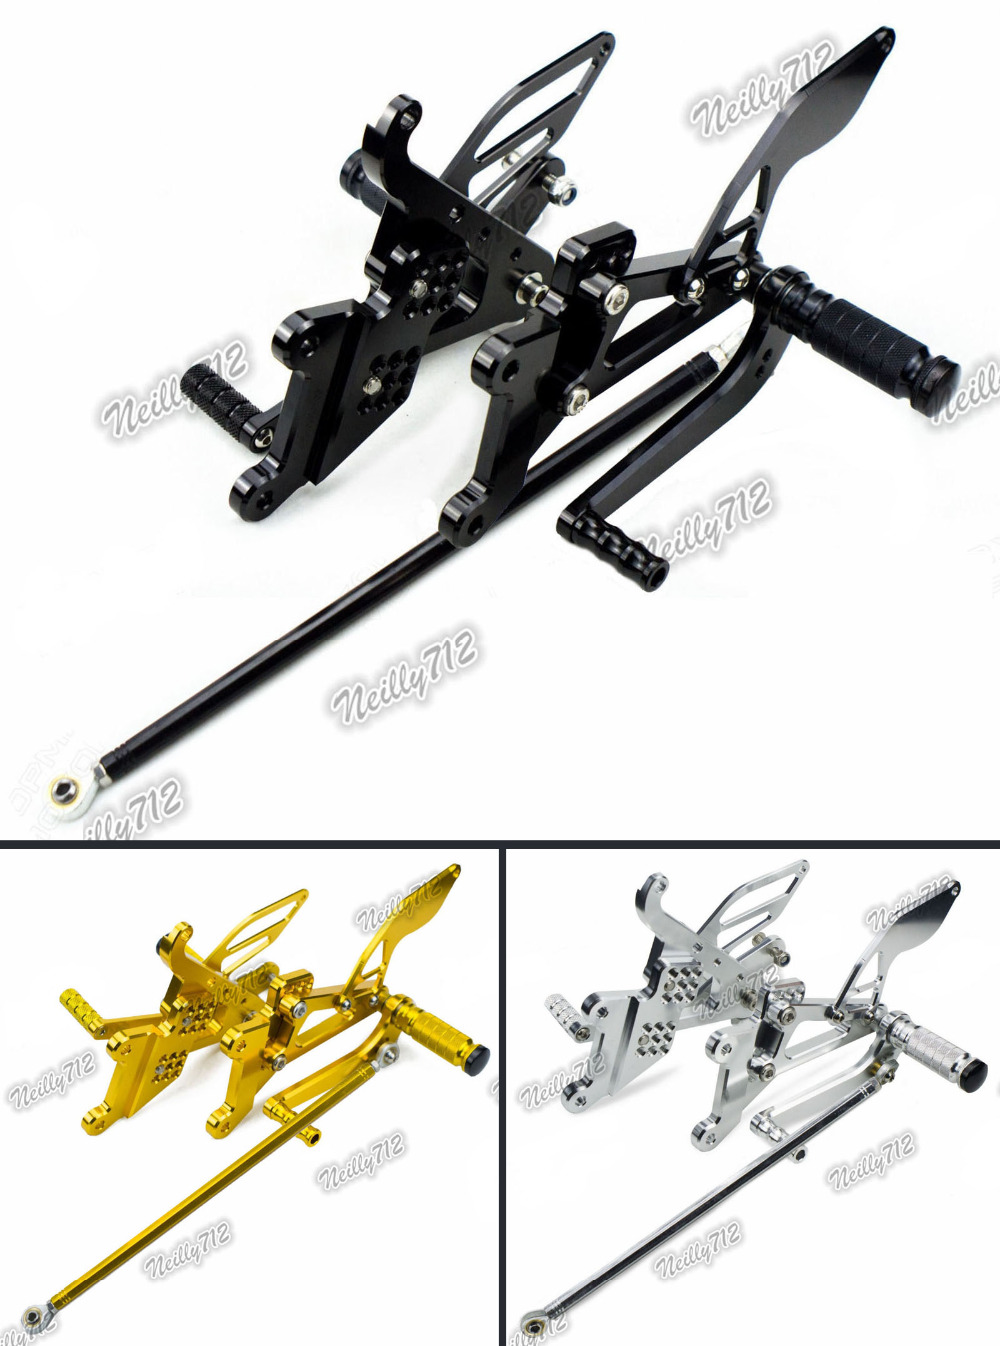 Motorcycle CNC Adjustable Rider Rear Sets Rearset Footrest Foot Rest Pegs For Yamaha YZF R6 2003 2004 2005 mfs motor motorcycle part front rear brake discs rotor for yamaha yzf r6 2003 2004 2005 yzfr6 03 04 05 gold